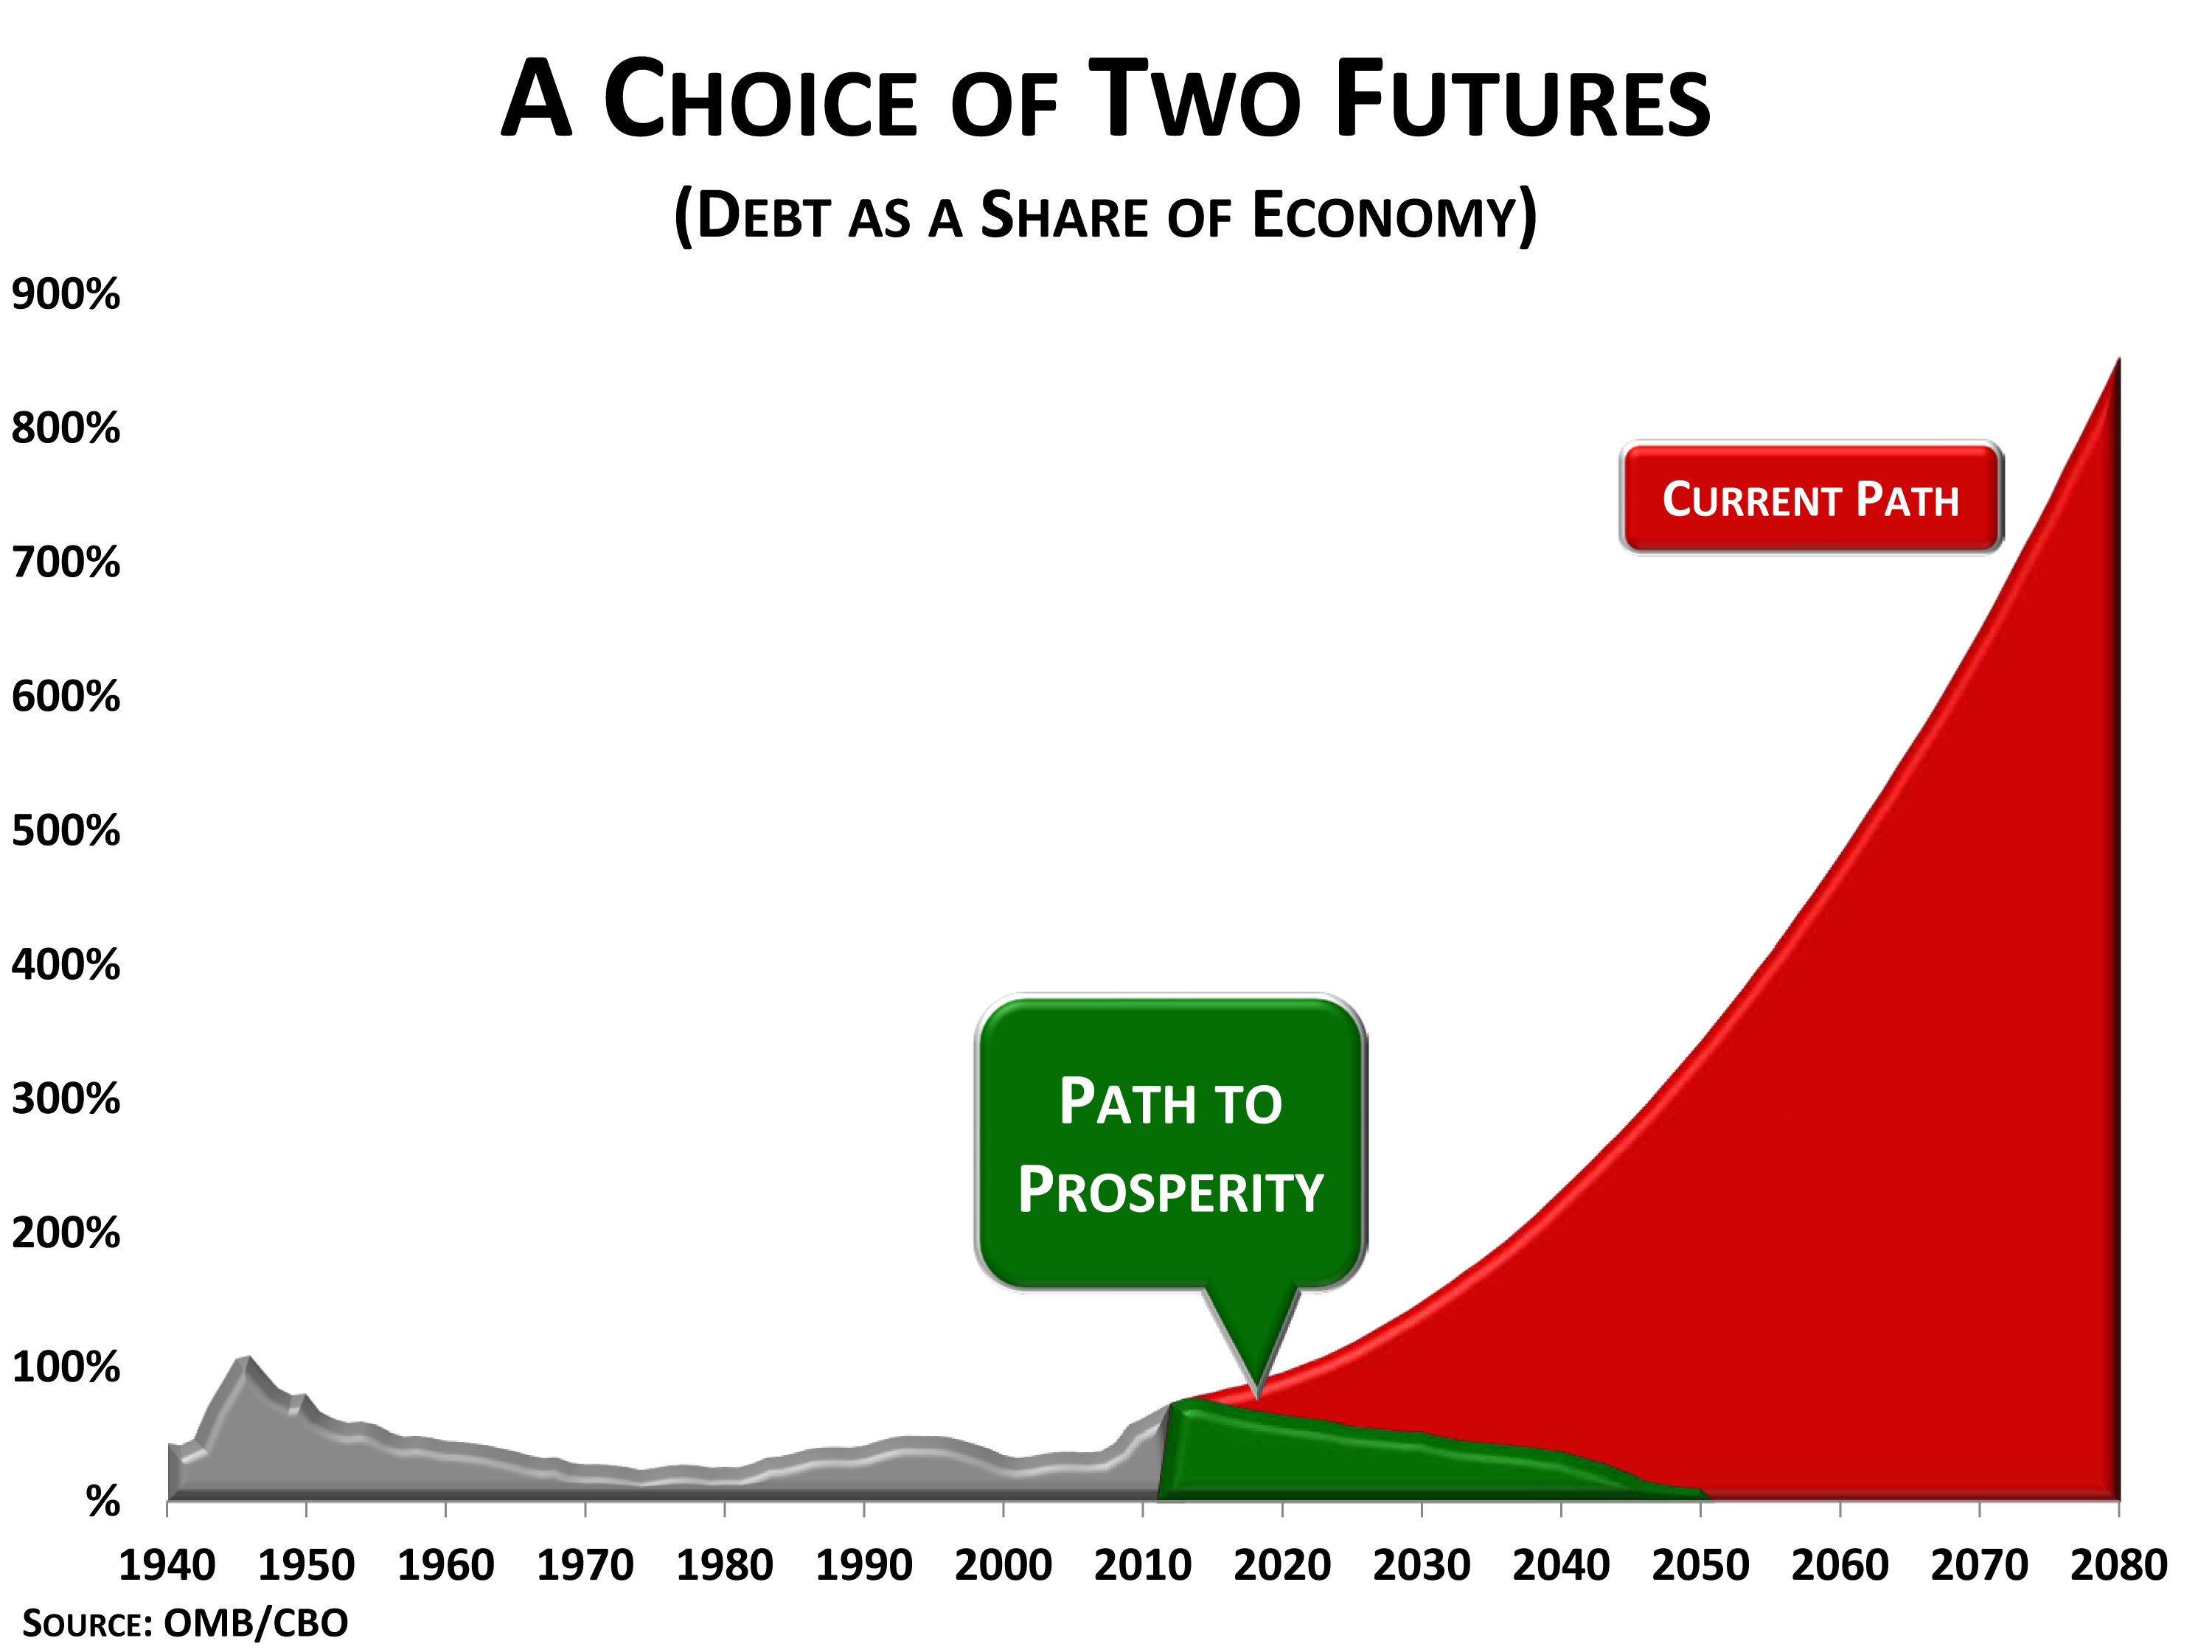 Choice of Two Futures